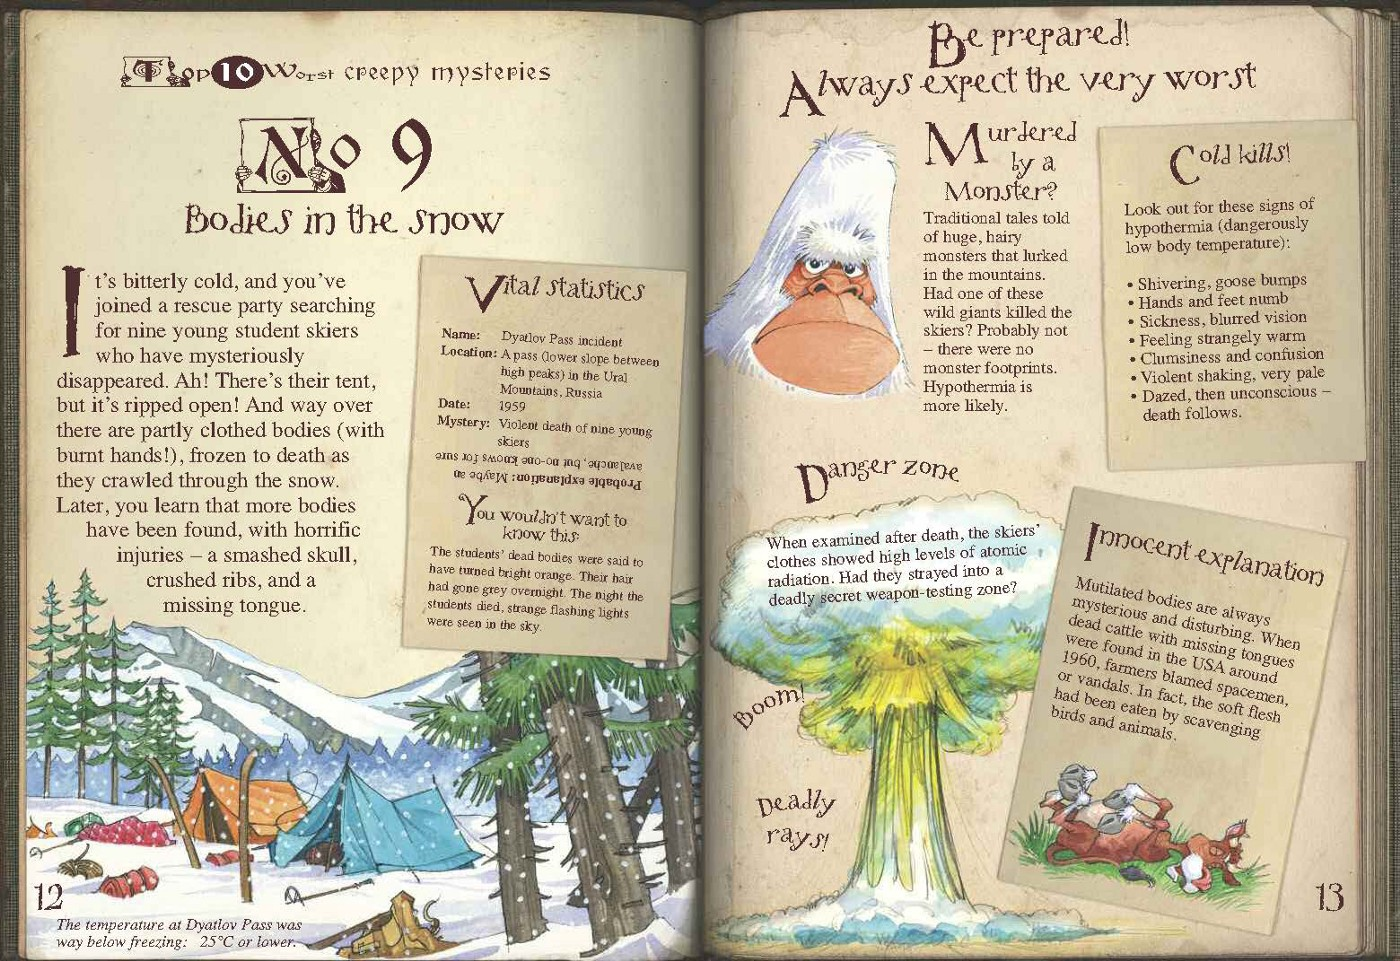 Yetis are REAL?! Better get prepared! - Brainwaves from Book